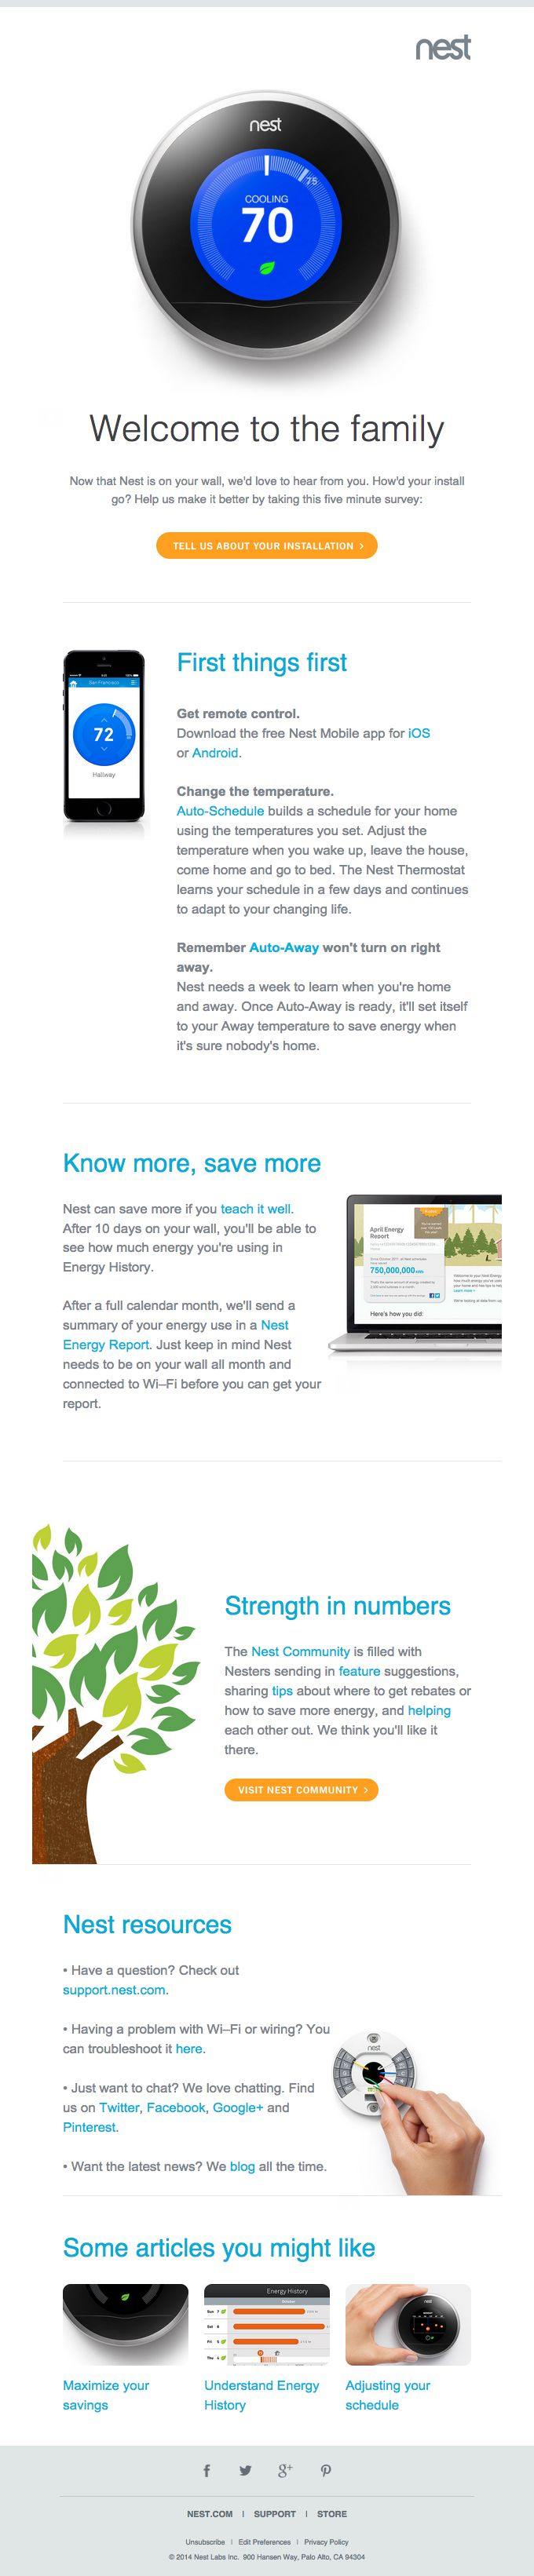 Nest Welcome Email Email Template Design Email Design Inspiration Email Design